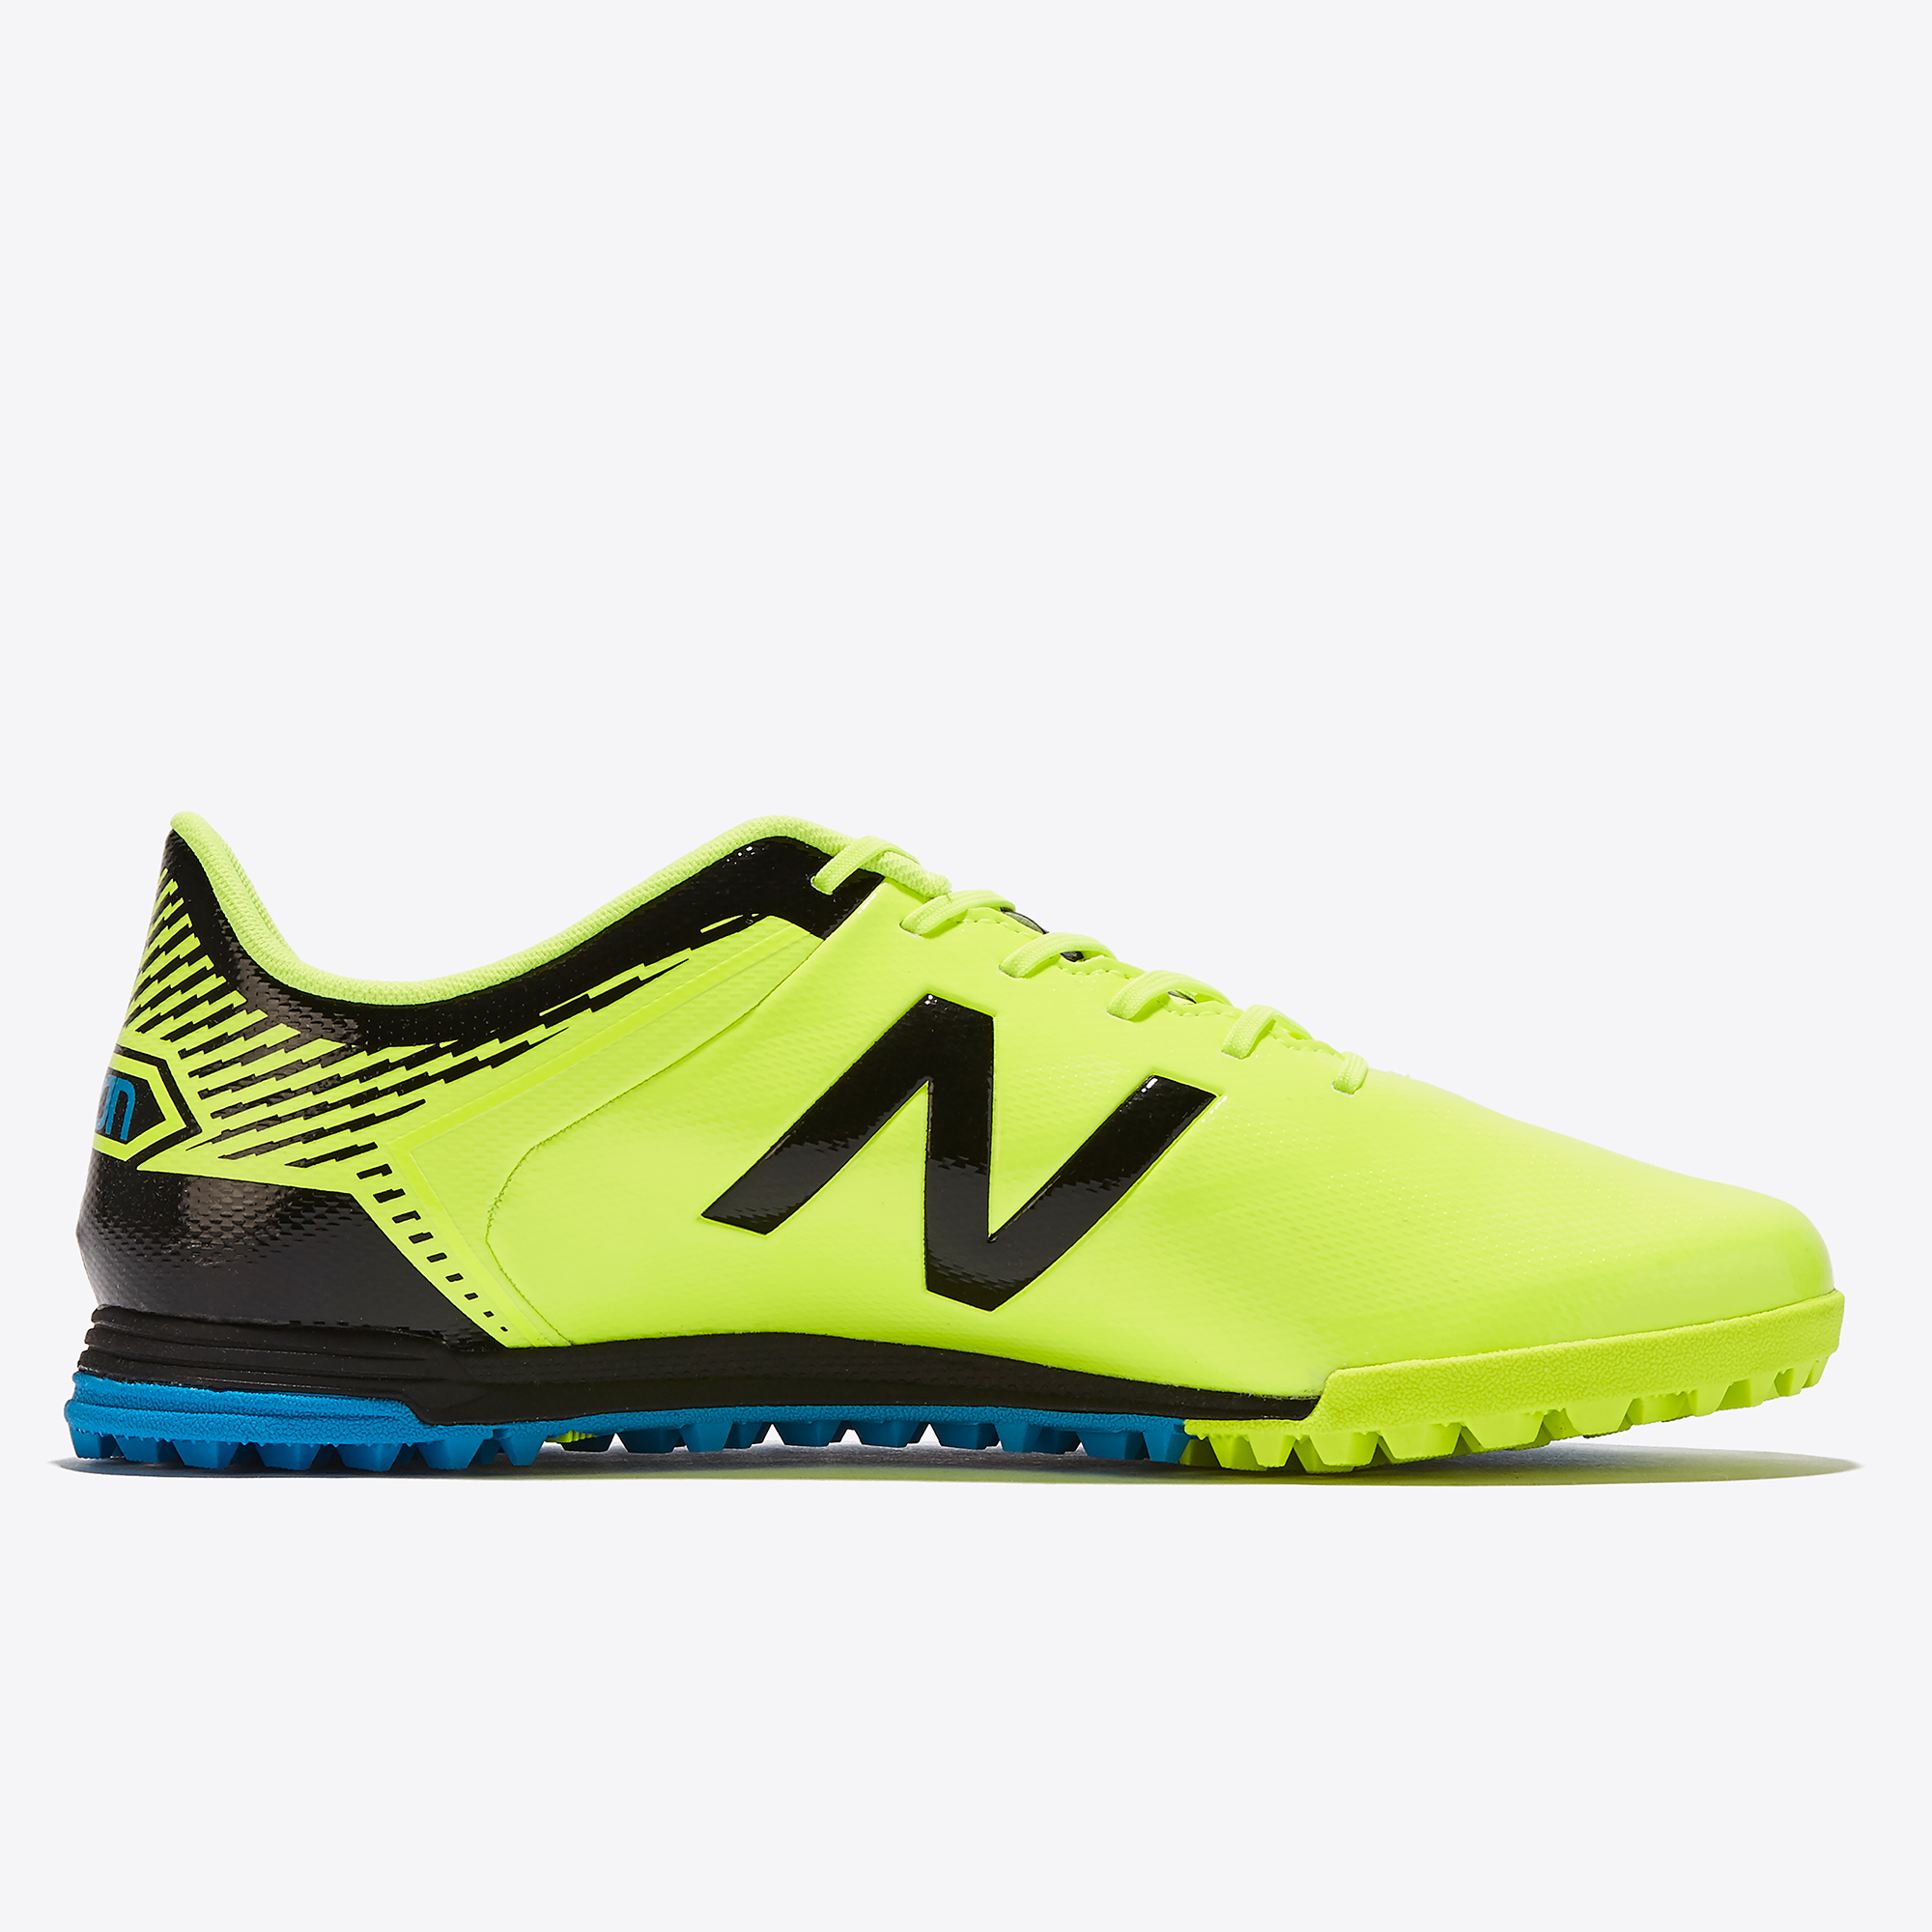 New Balance Furon 3.0 Dispatch TF - Hi-Lite / Maldives Blue / Black